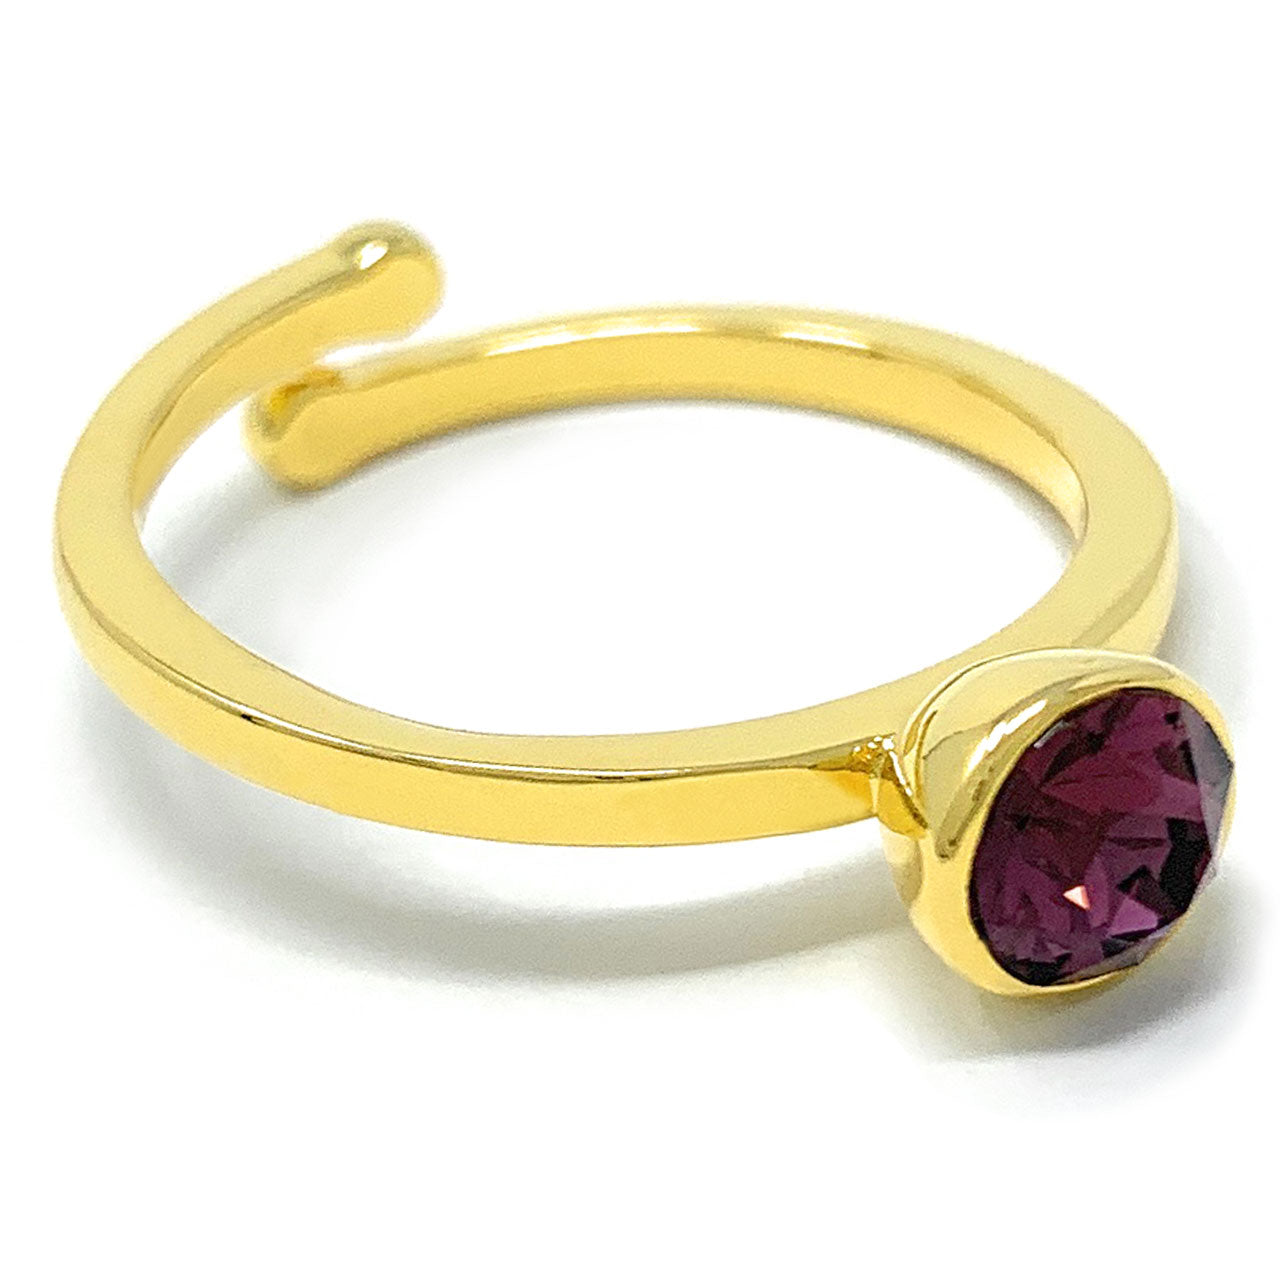 Harley Adjustable Ring with Purple Amethyst Round Crystals from Swarovski Gold Plated - Ed Heart